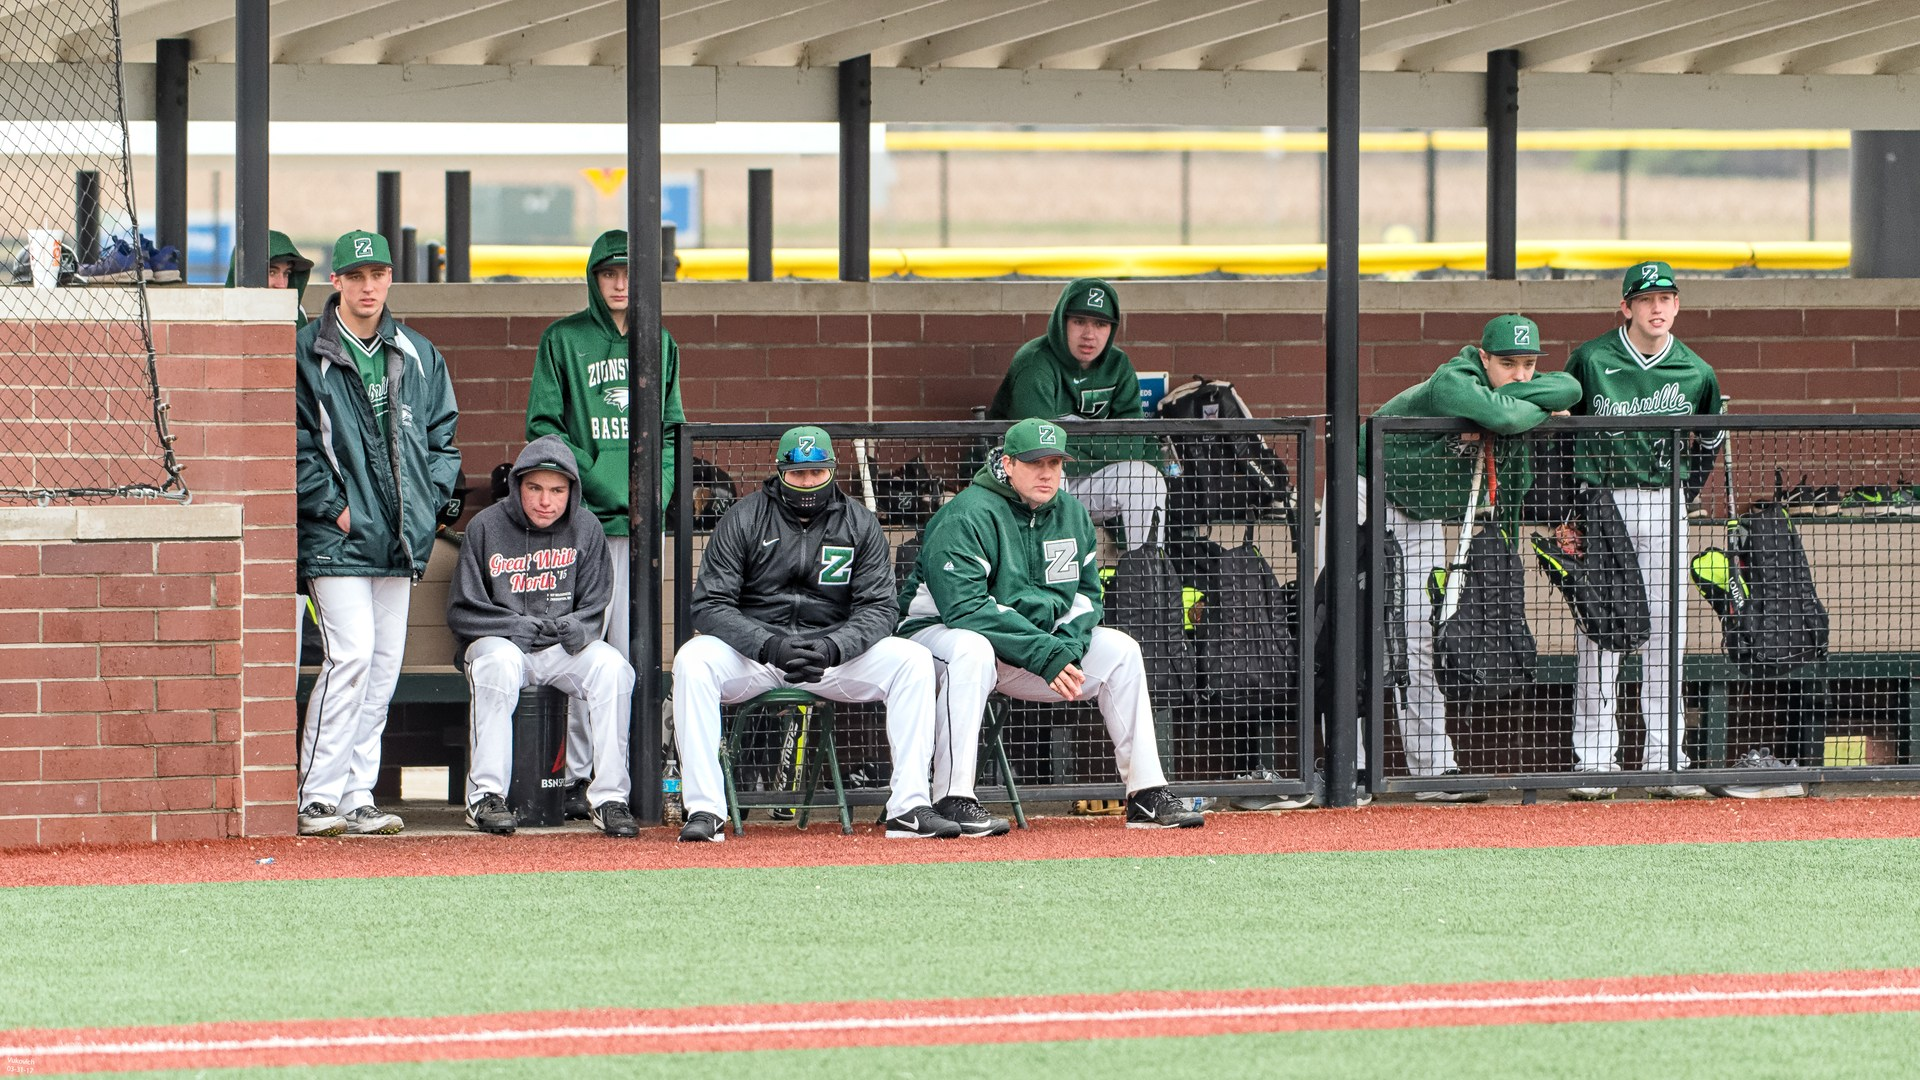 Zionsville Eagles Baseball team in dugout photo